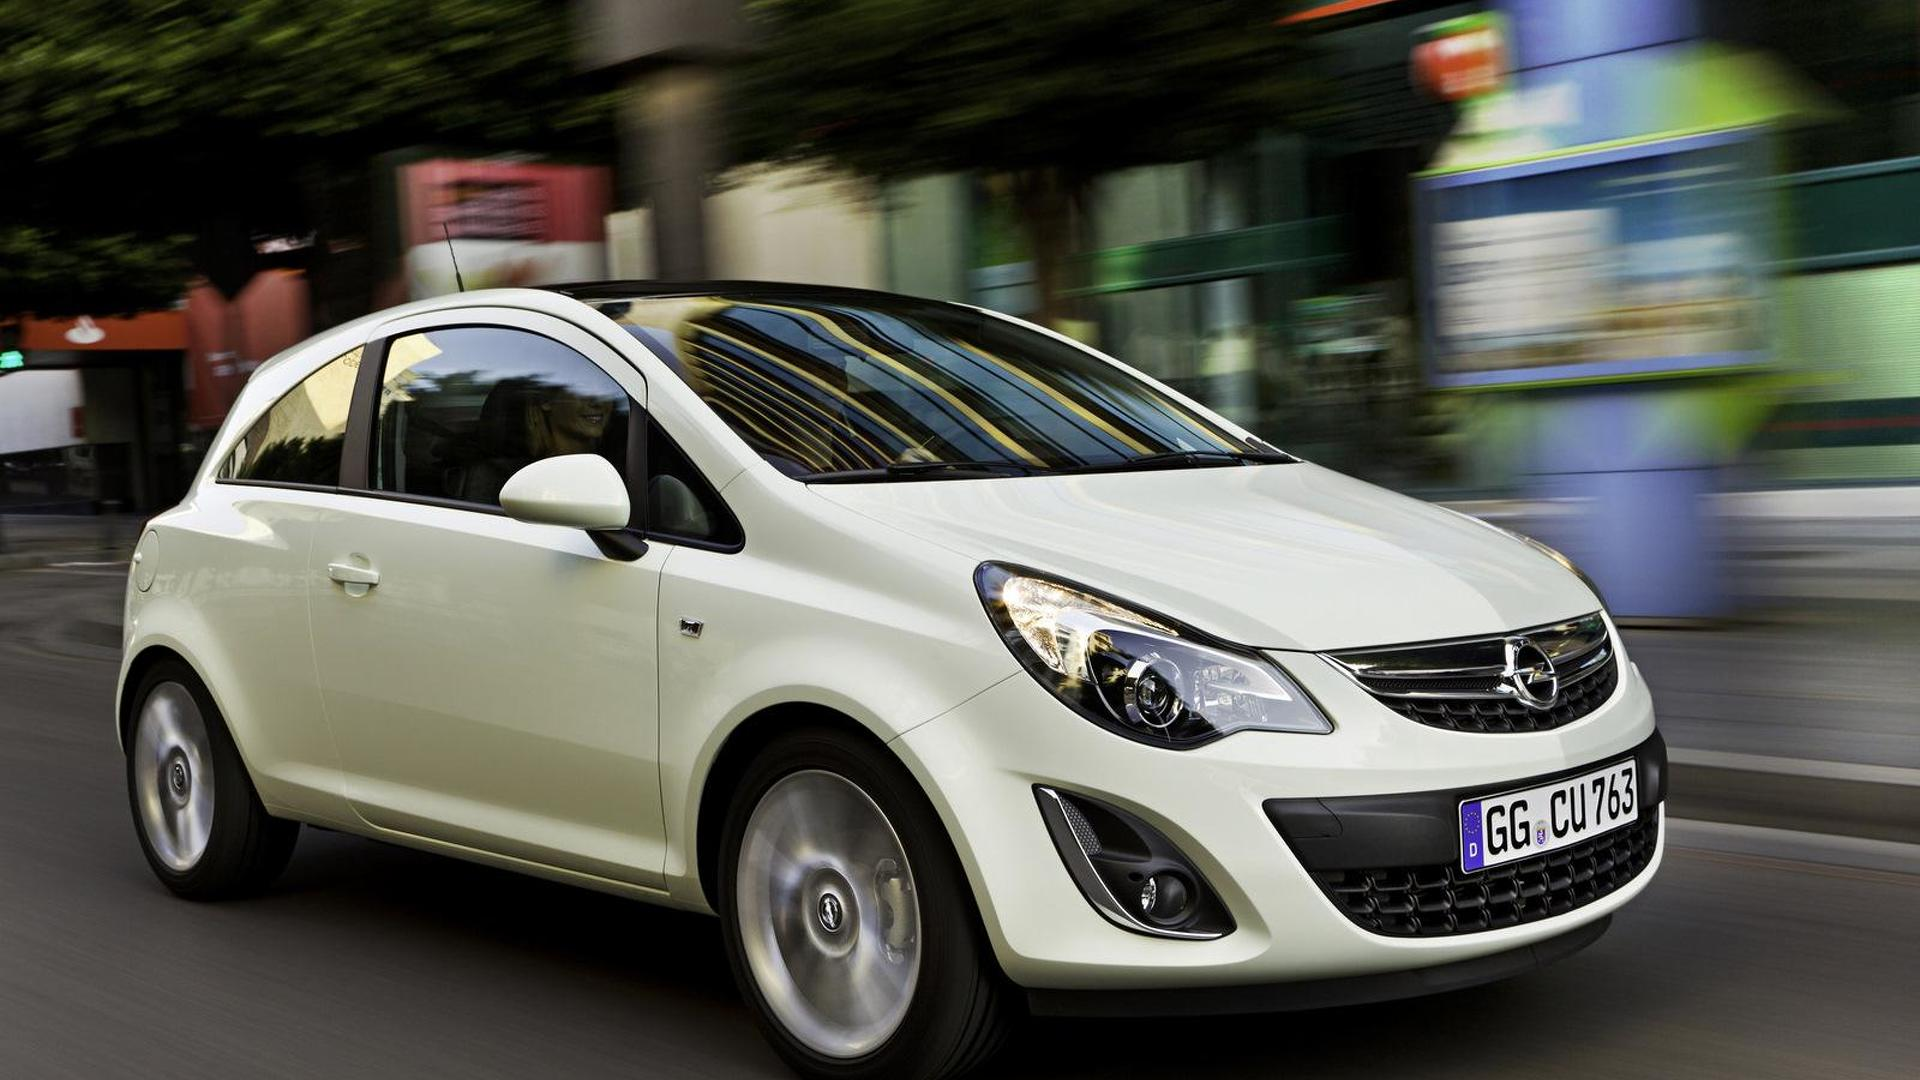 Opel Corsa 2010: beauty and style 13